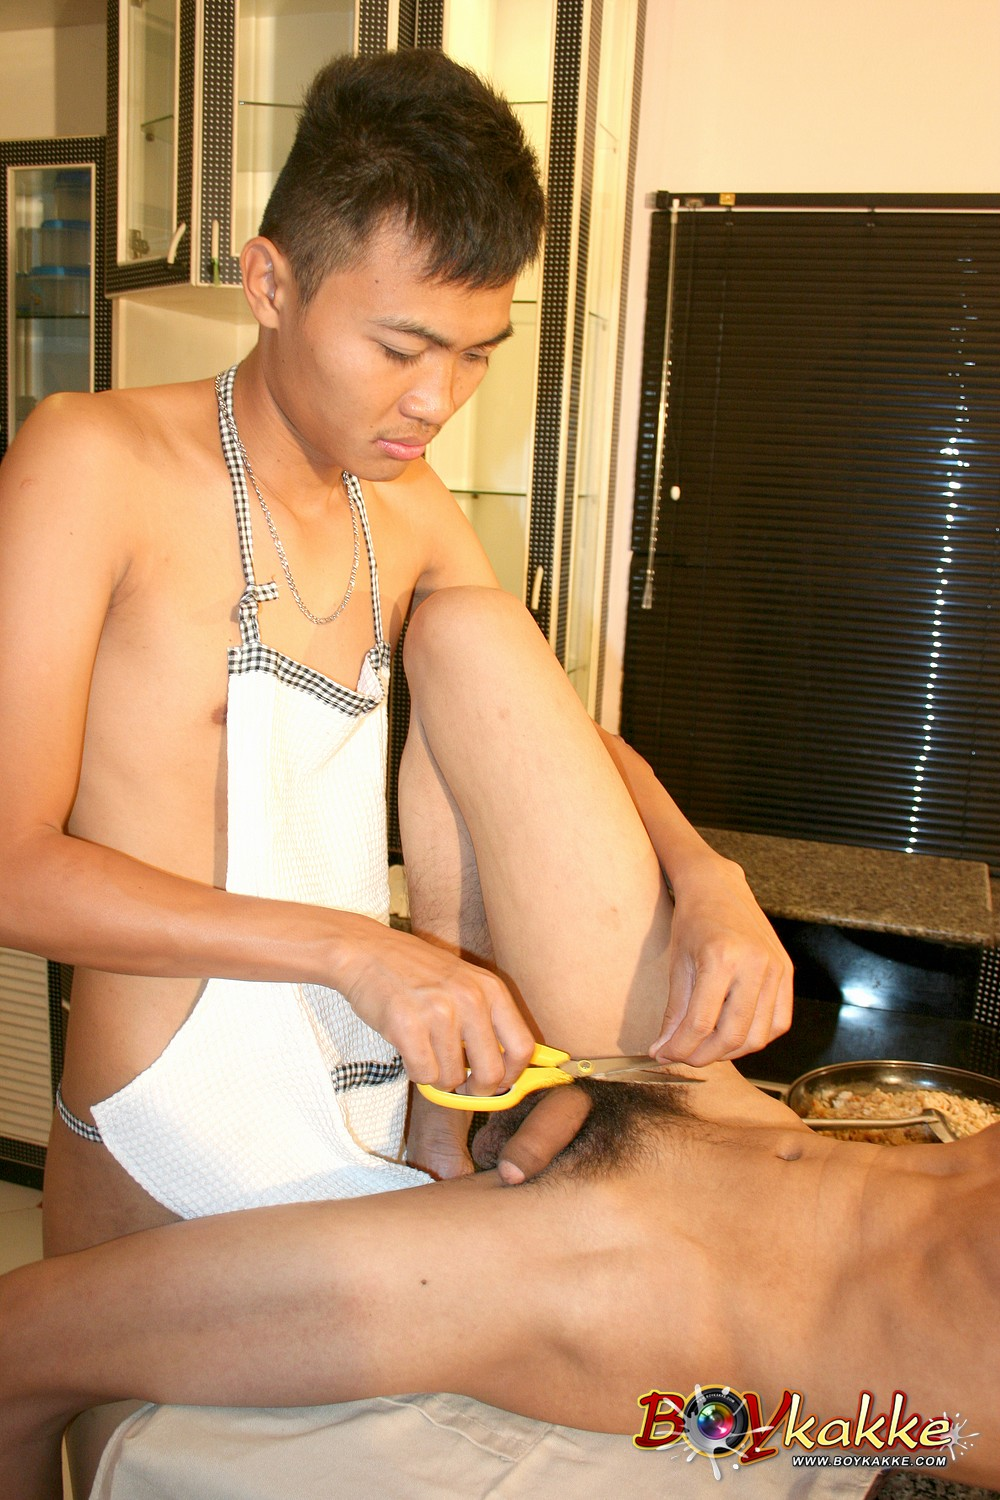 Boykakke Asians Fucking Bareback in Kitchen torrent09 Asian Guys Fucking Bareback in the Kitchen and Make a Cum Facial